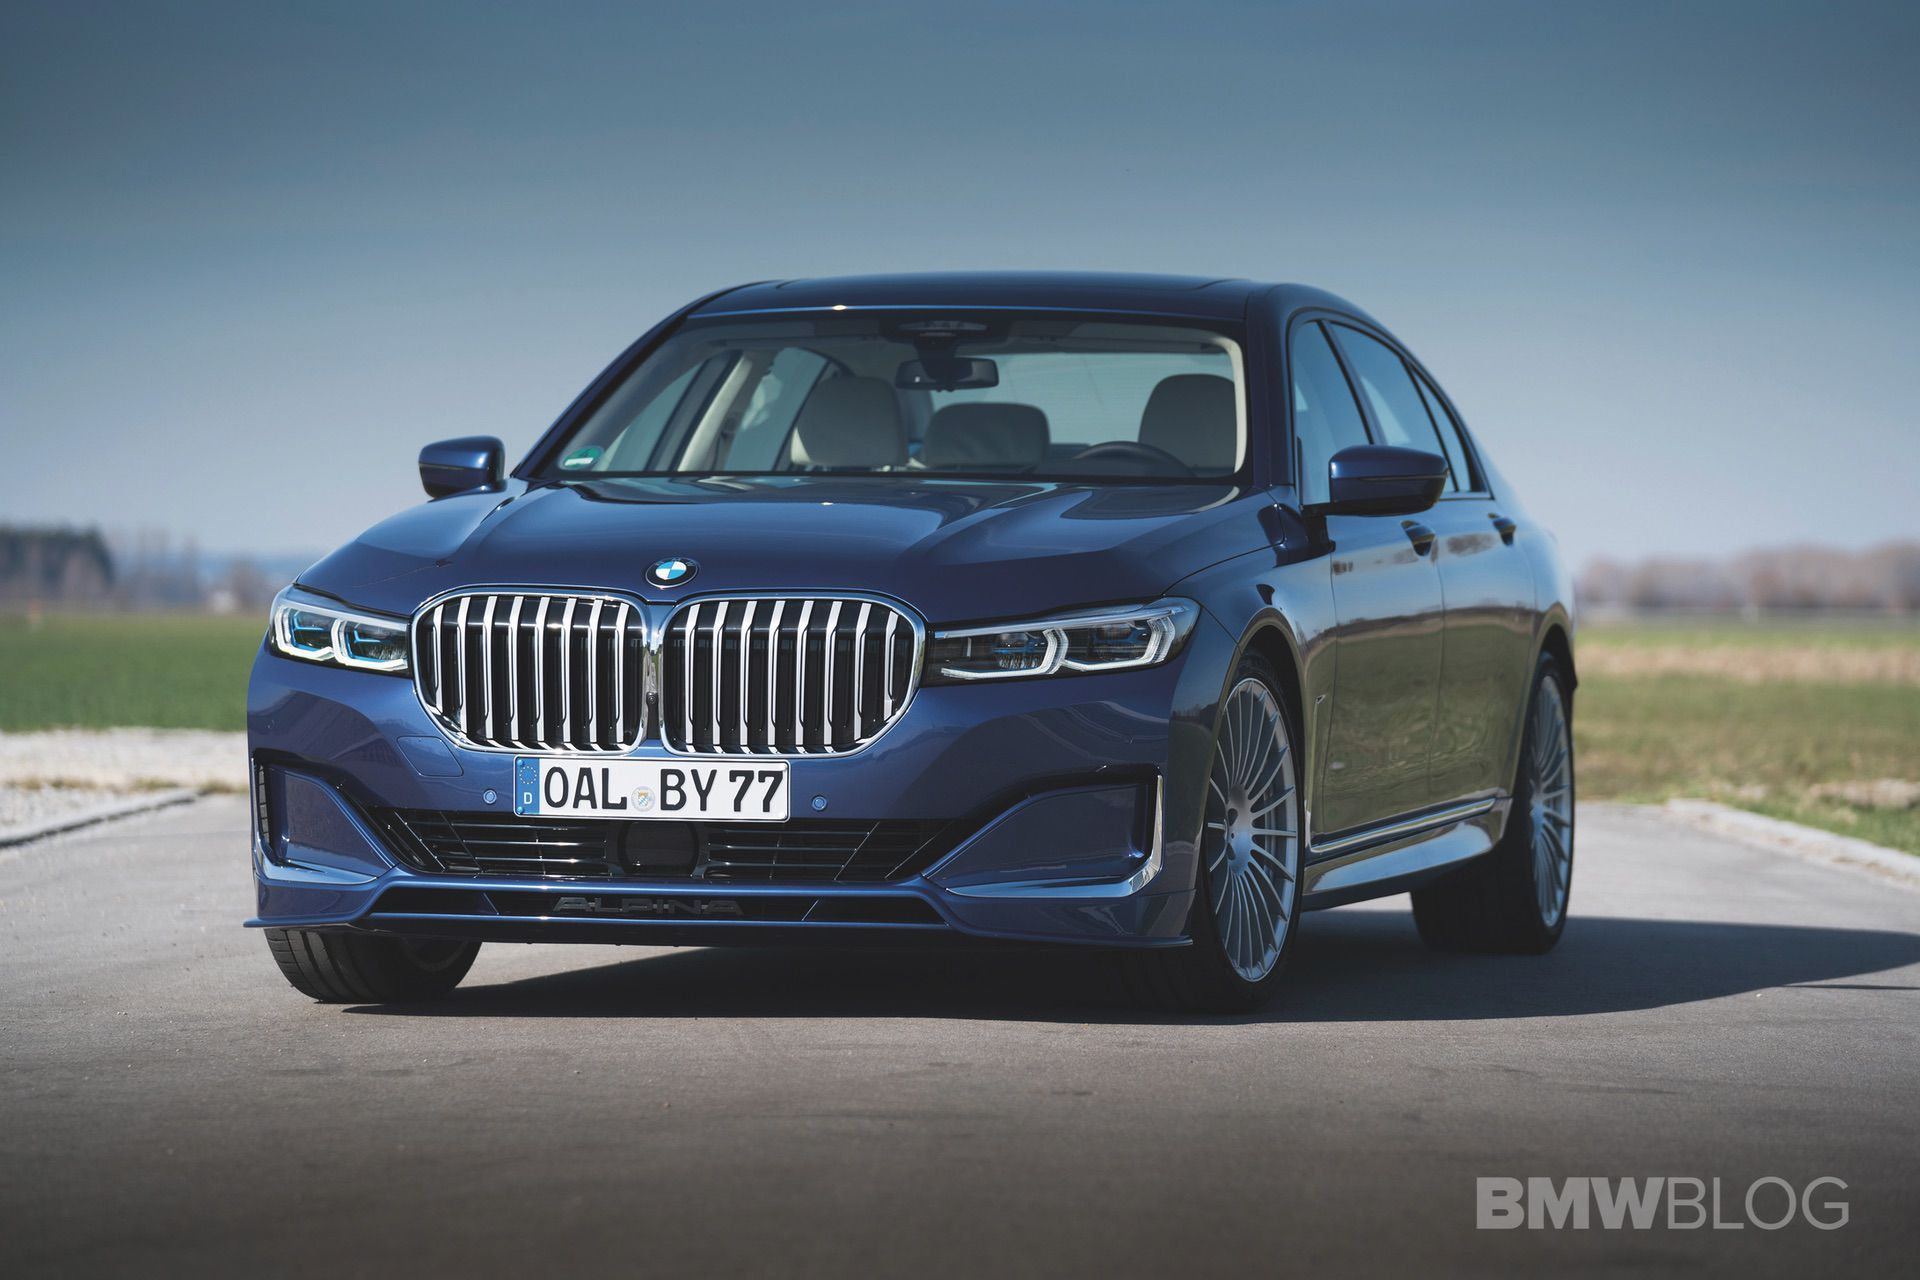 2020 Alpina B7 Xdrive In Alpina Blue A New Photo Gallery With